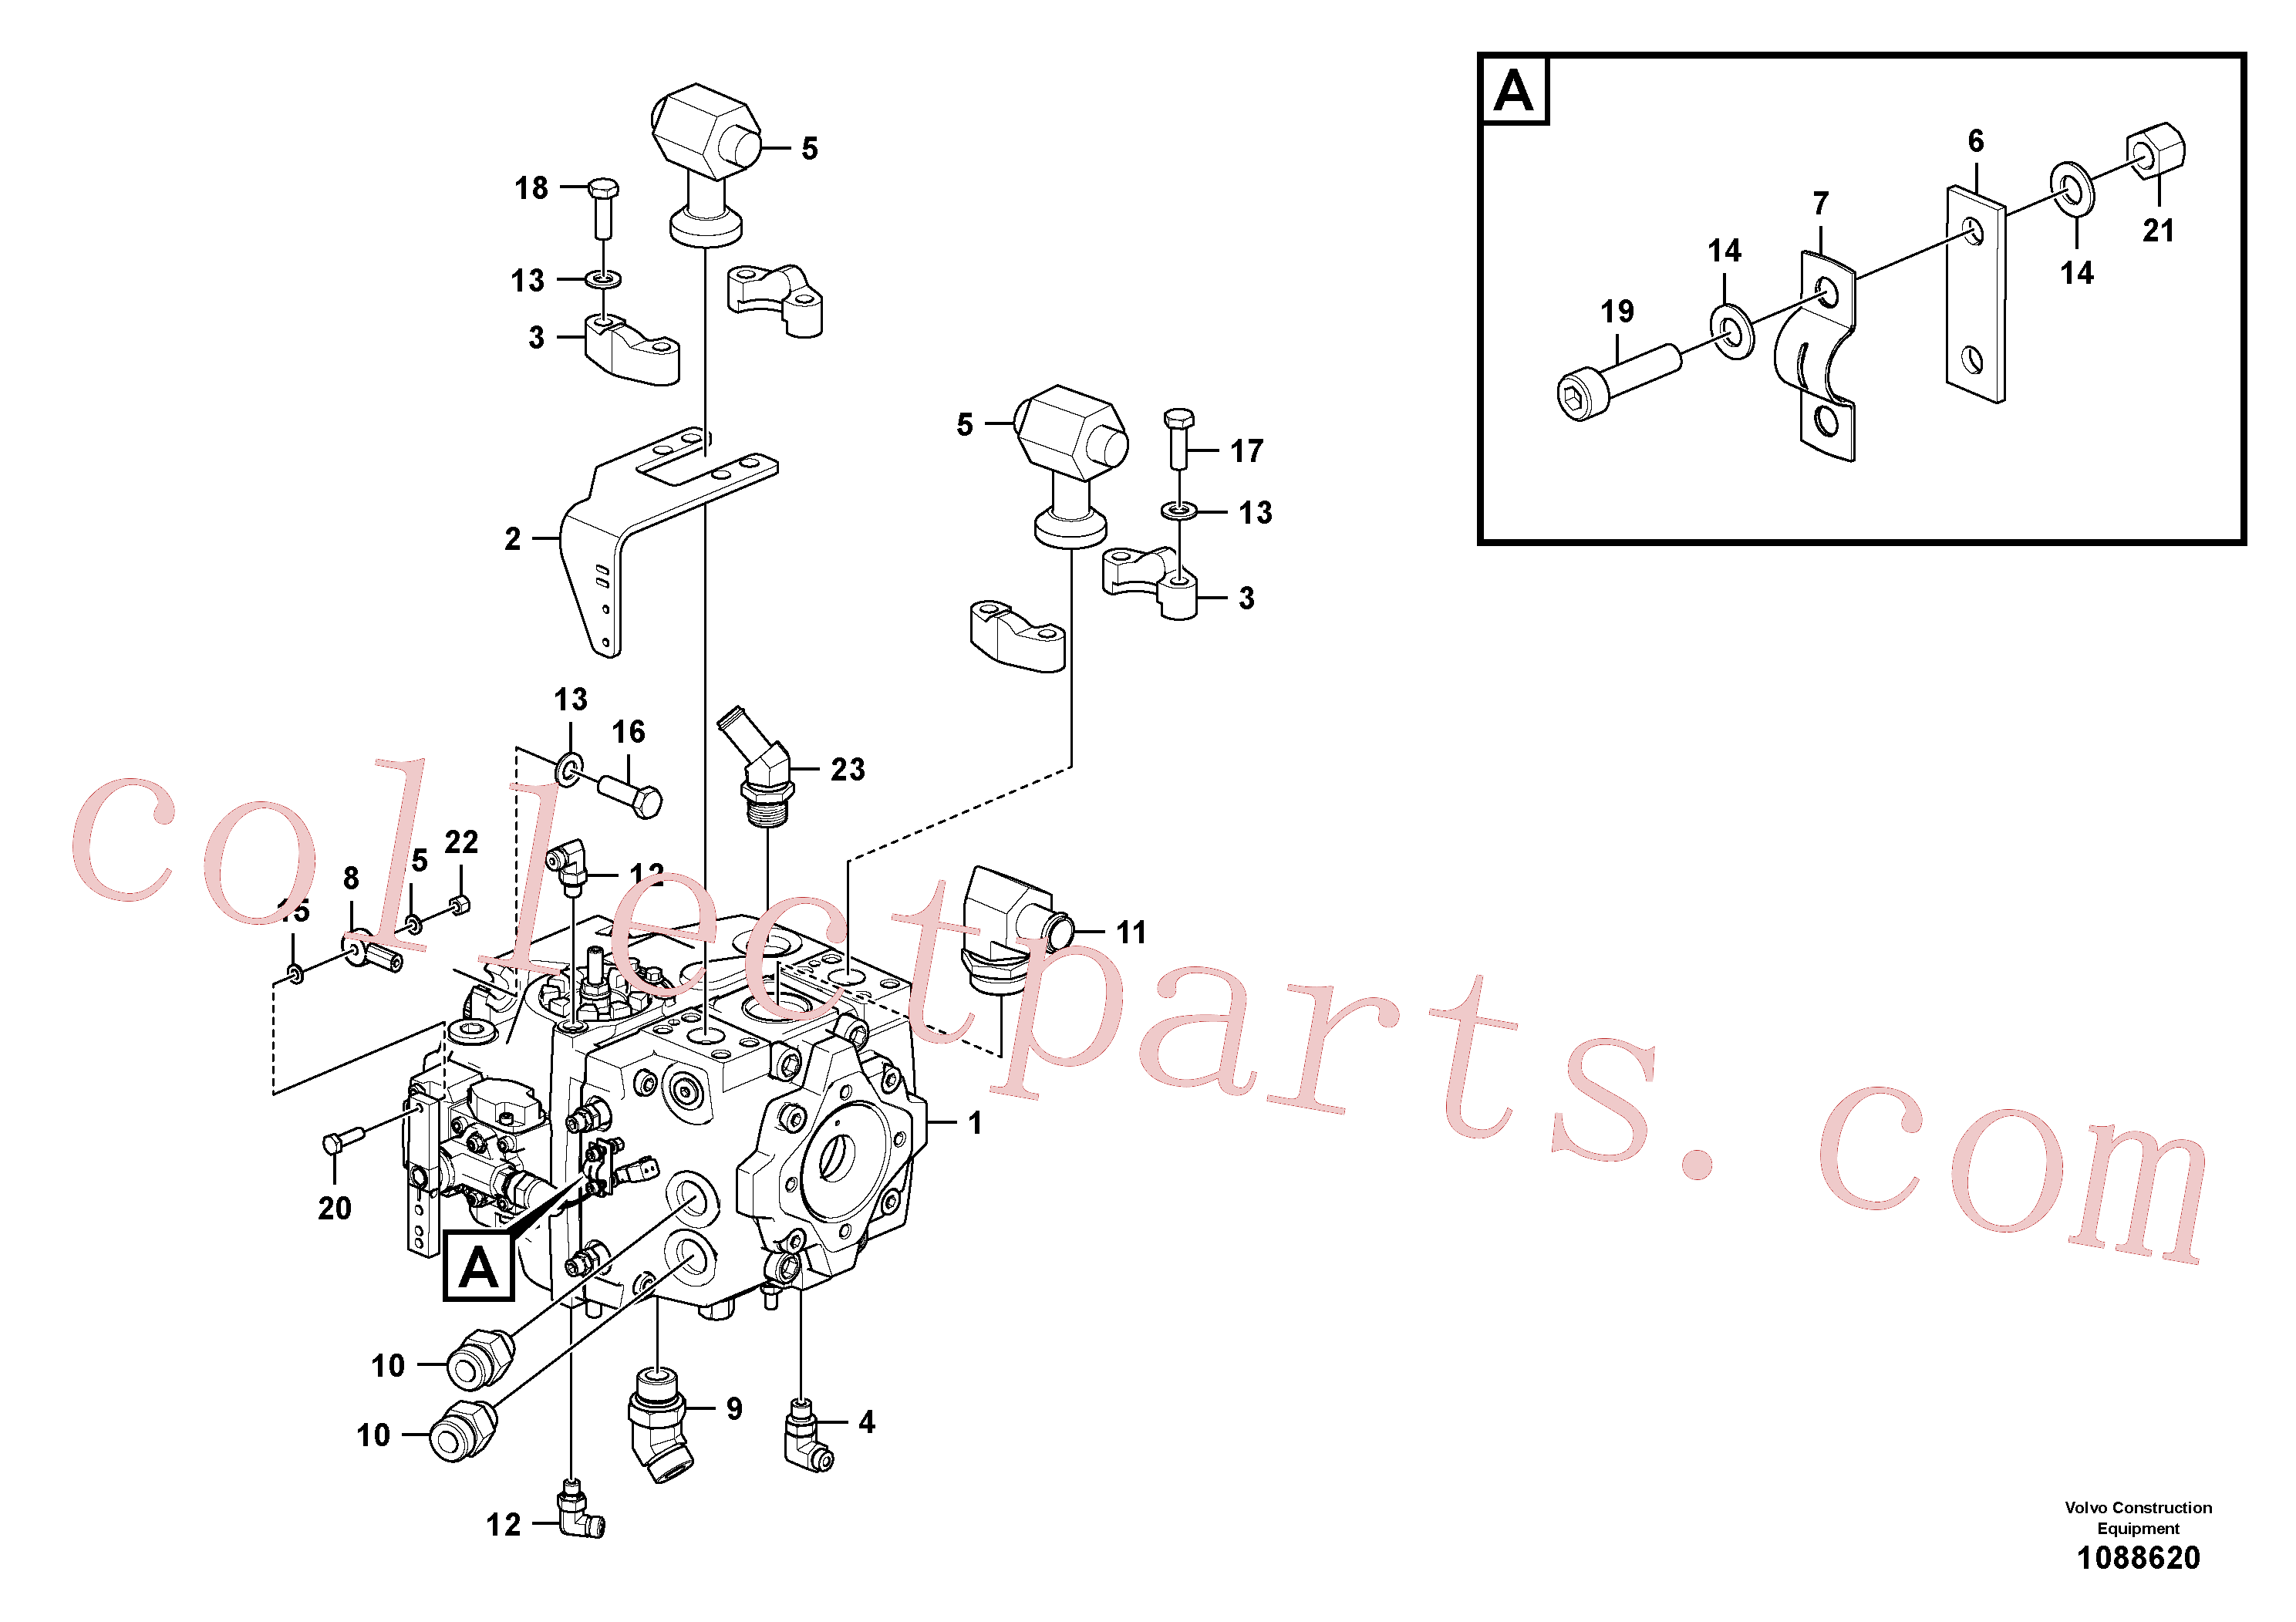 RM20194635 for Volvo Hydraulic pump assembly(1088620 assembly)